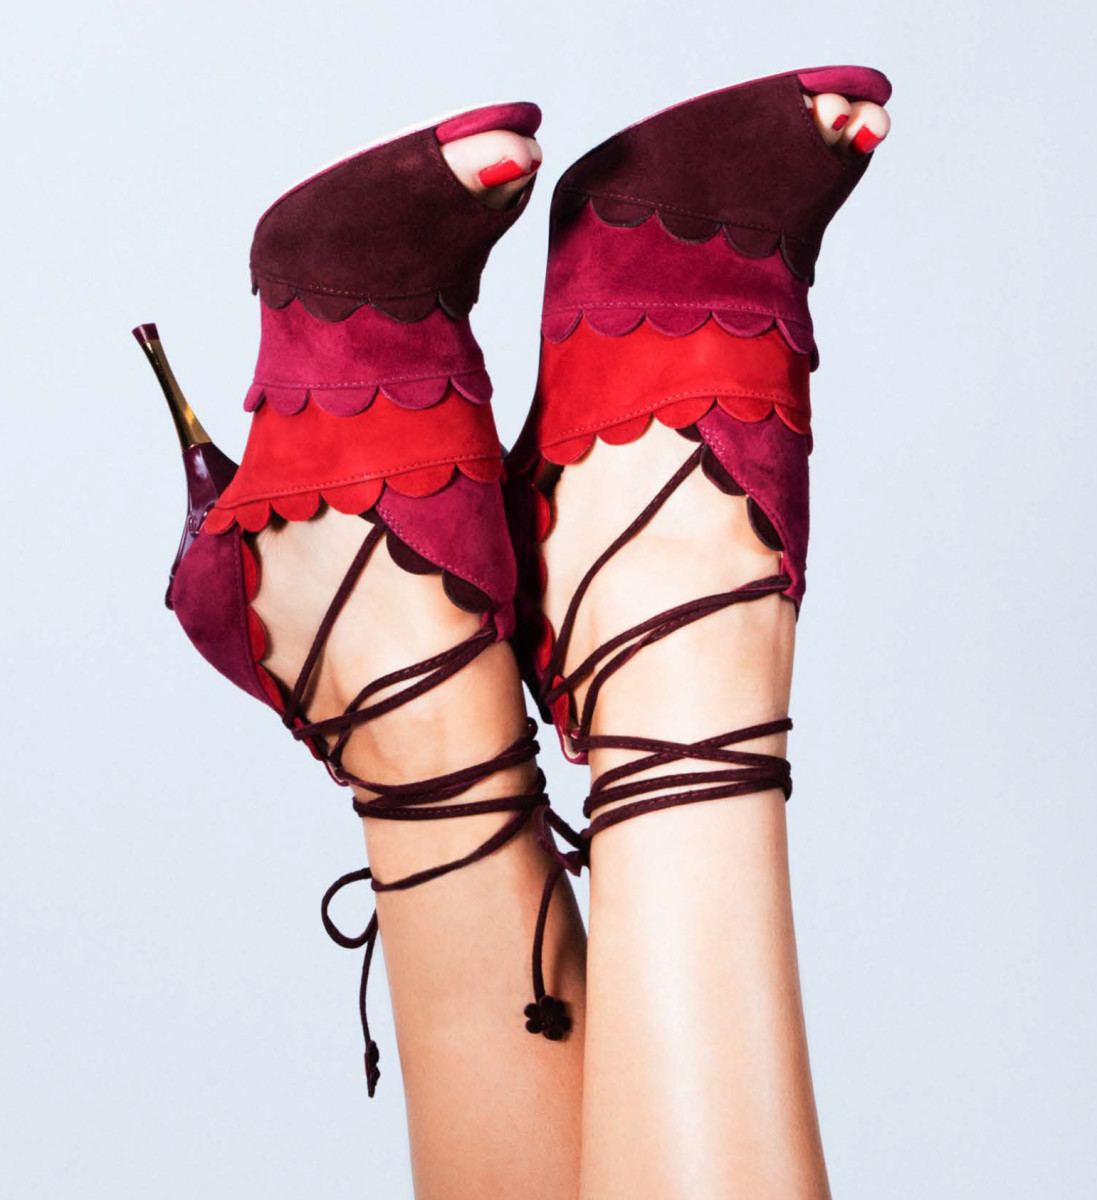 Shoes from Isa Tapia's fall 2016 collection. Photo: Isa Tapia